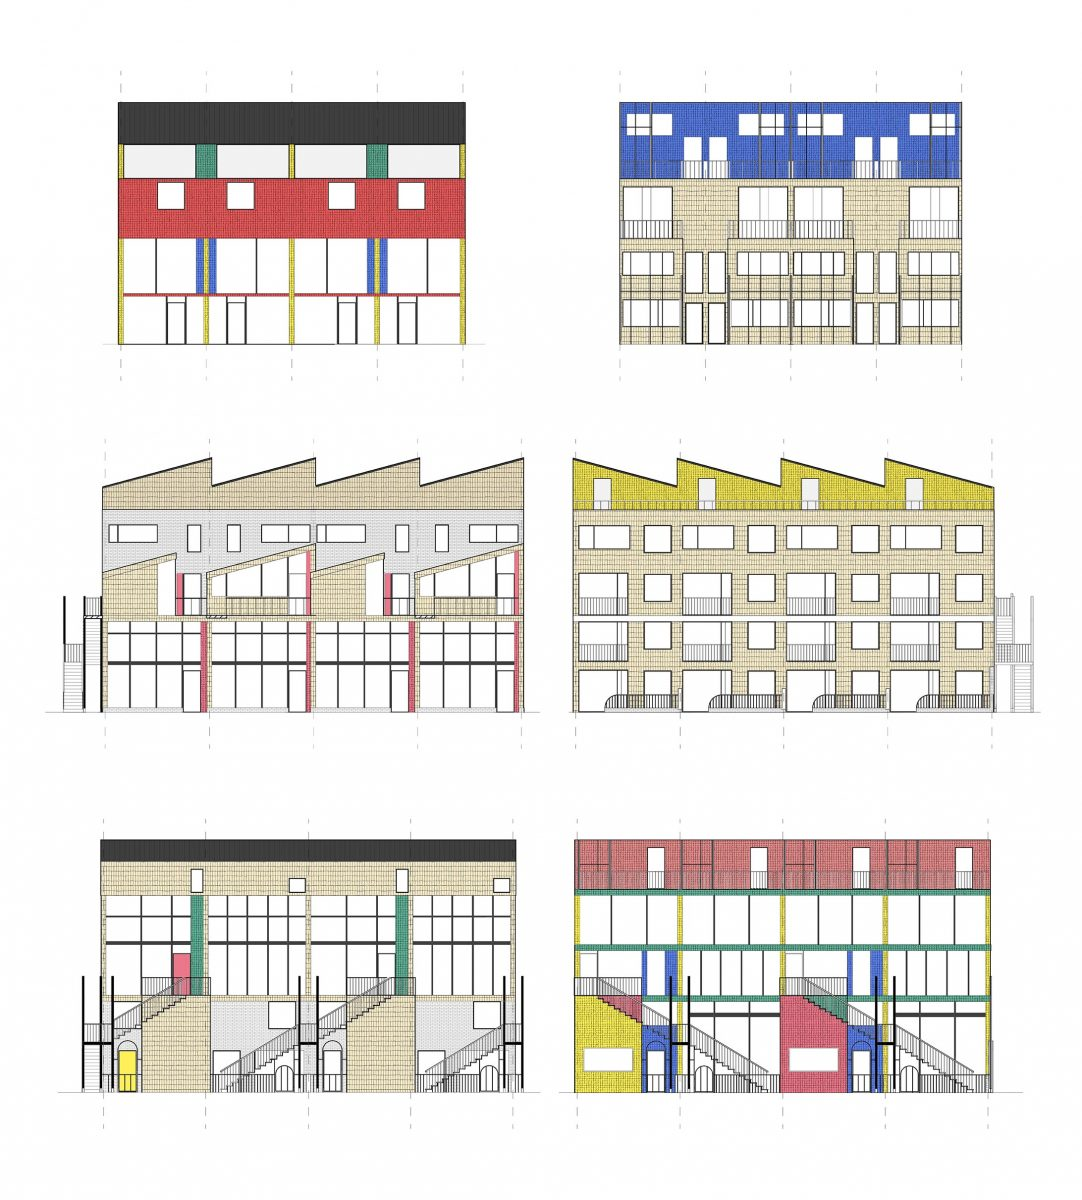 Elevations designed to respond either to the street with brightly coloured tiles or internal gardens and squares with softer timber singles. Brightly coloured tiles then highlight entrances at ground and first floors.